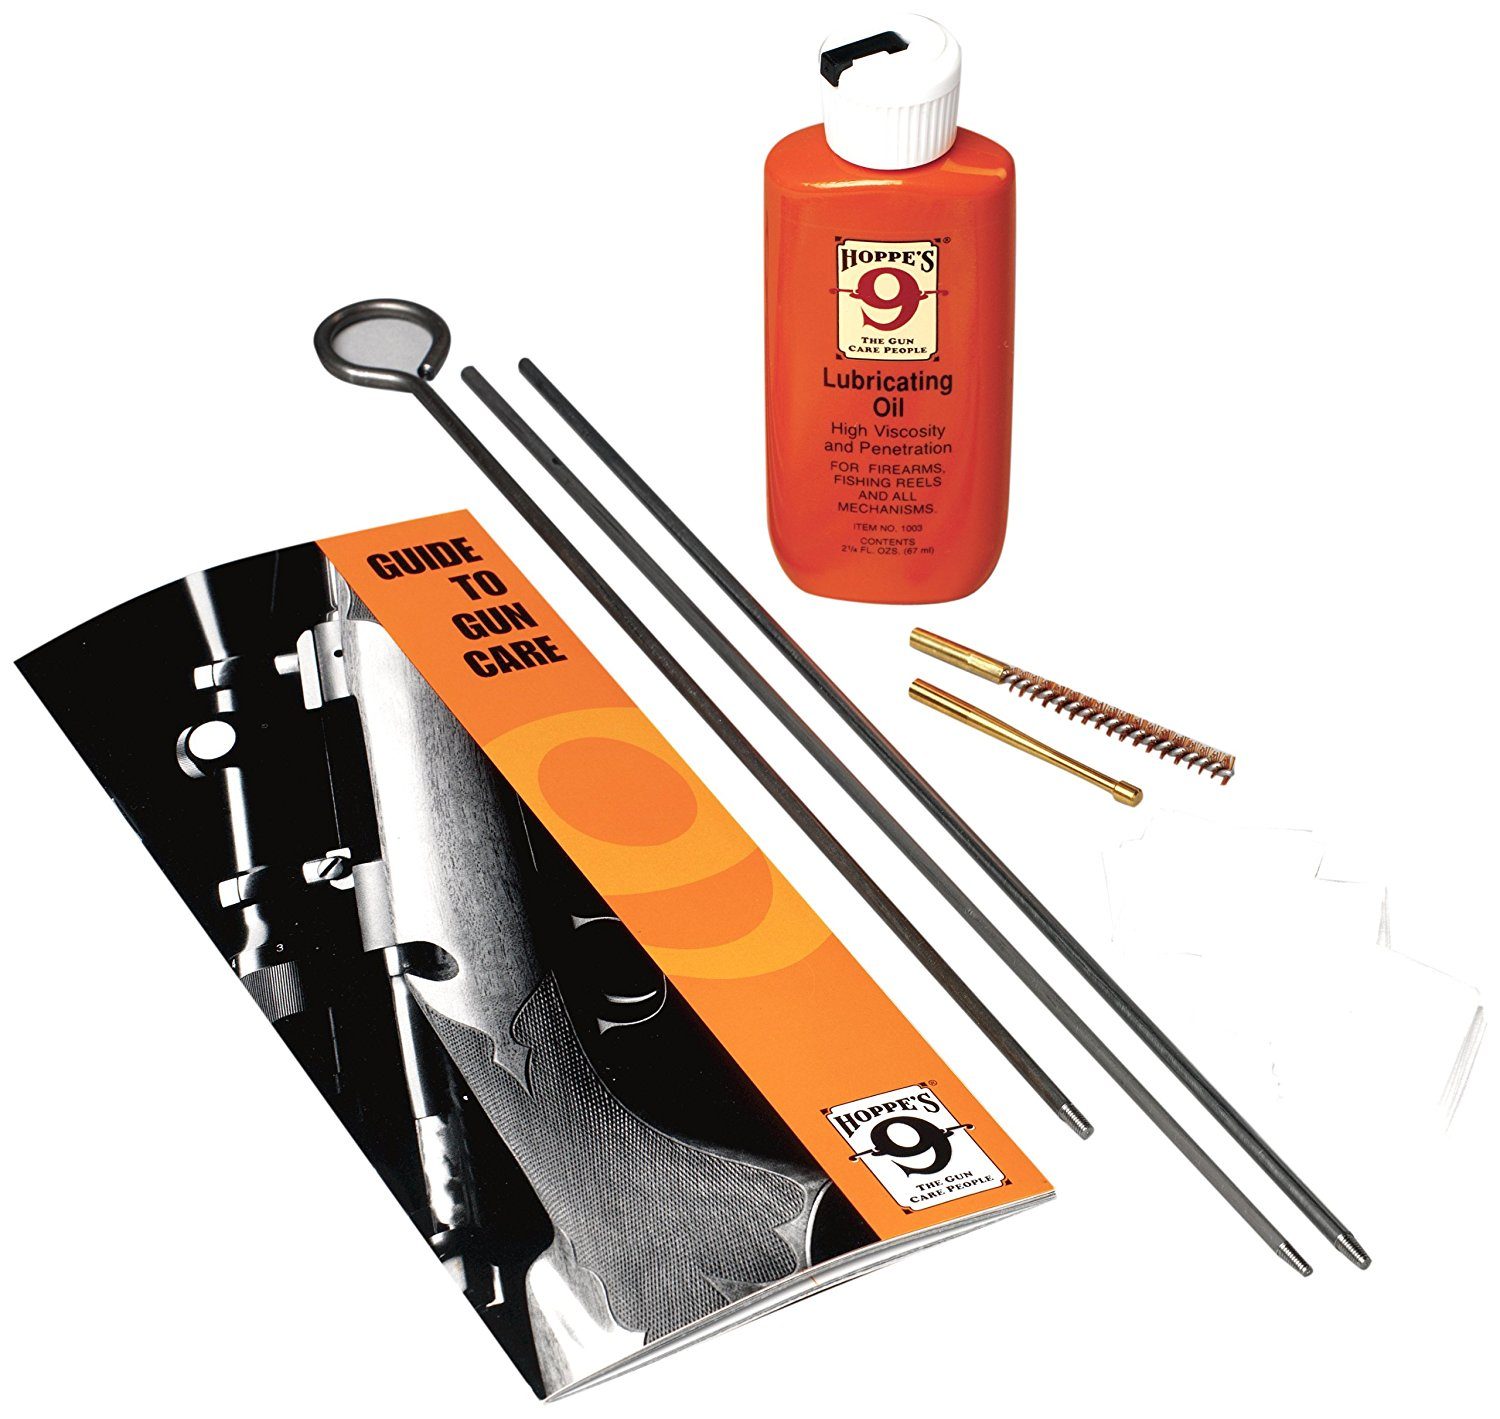 Air Pistol and Air Rifle Maintenance Kit, 44 Competition 45 New Slow shooting Rods 25Yards Modern 10X12Inch 357 Pistol... by